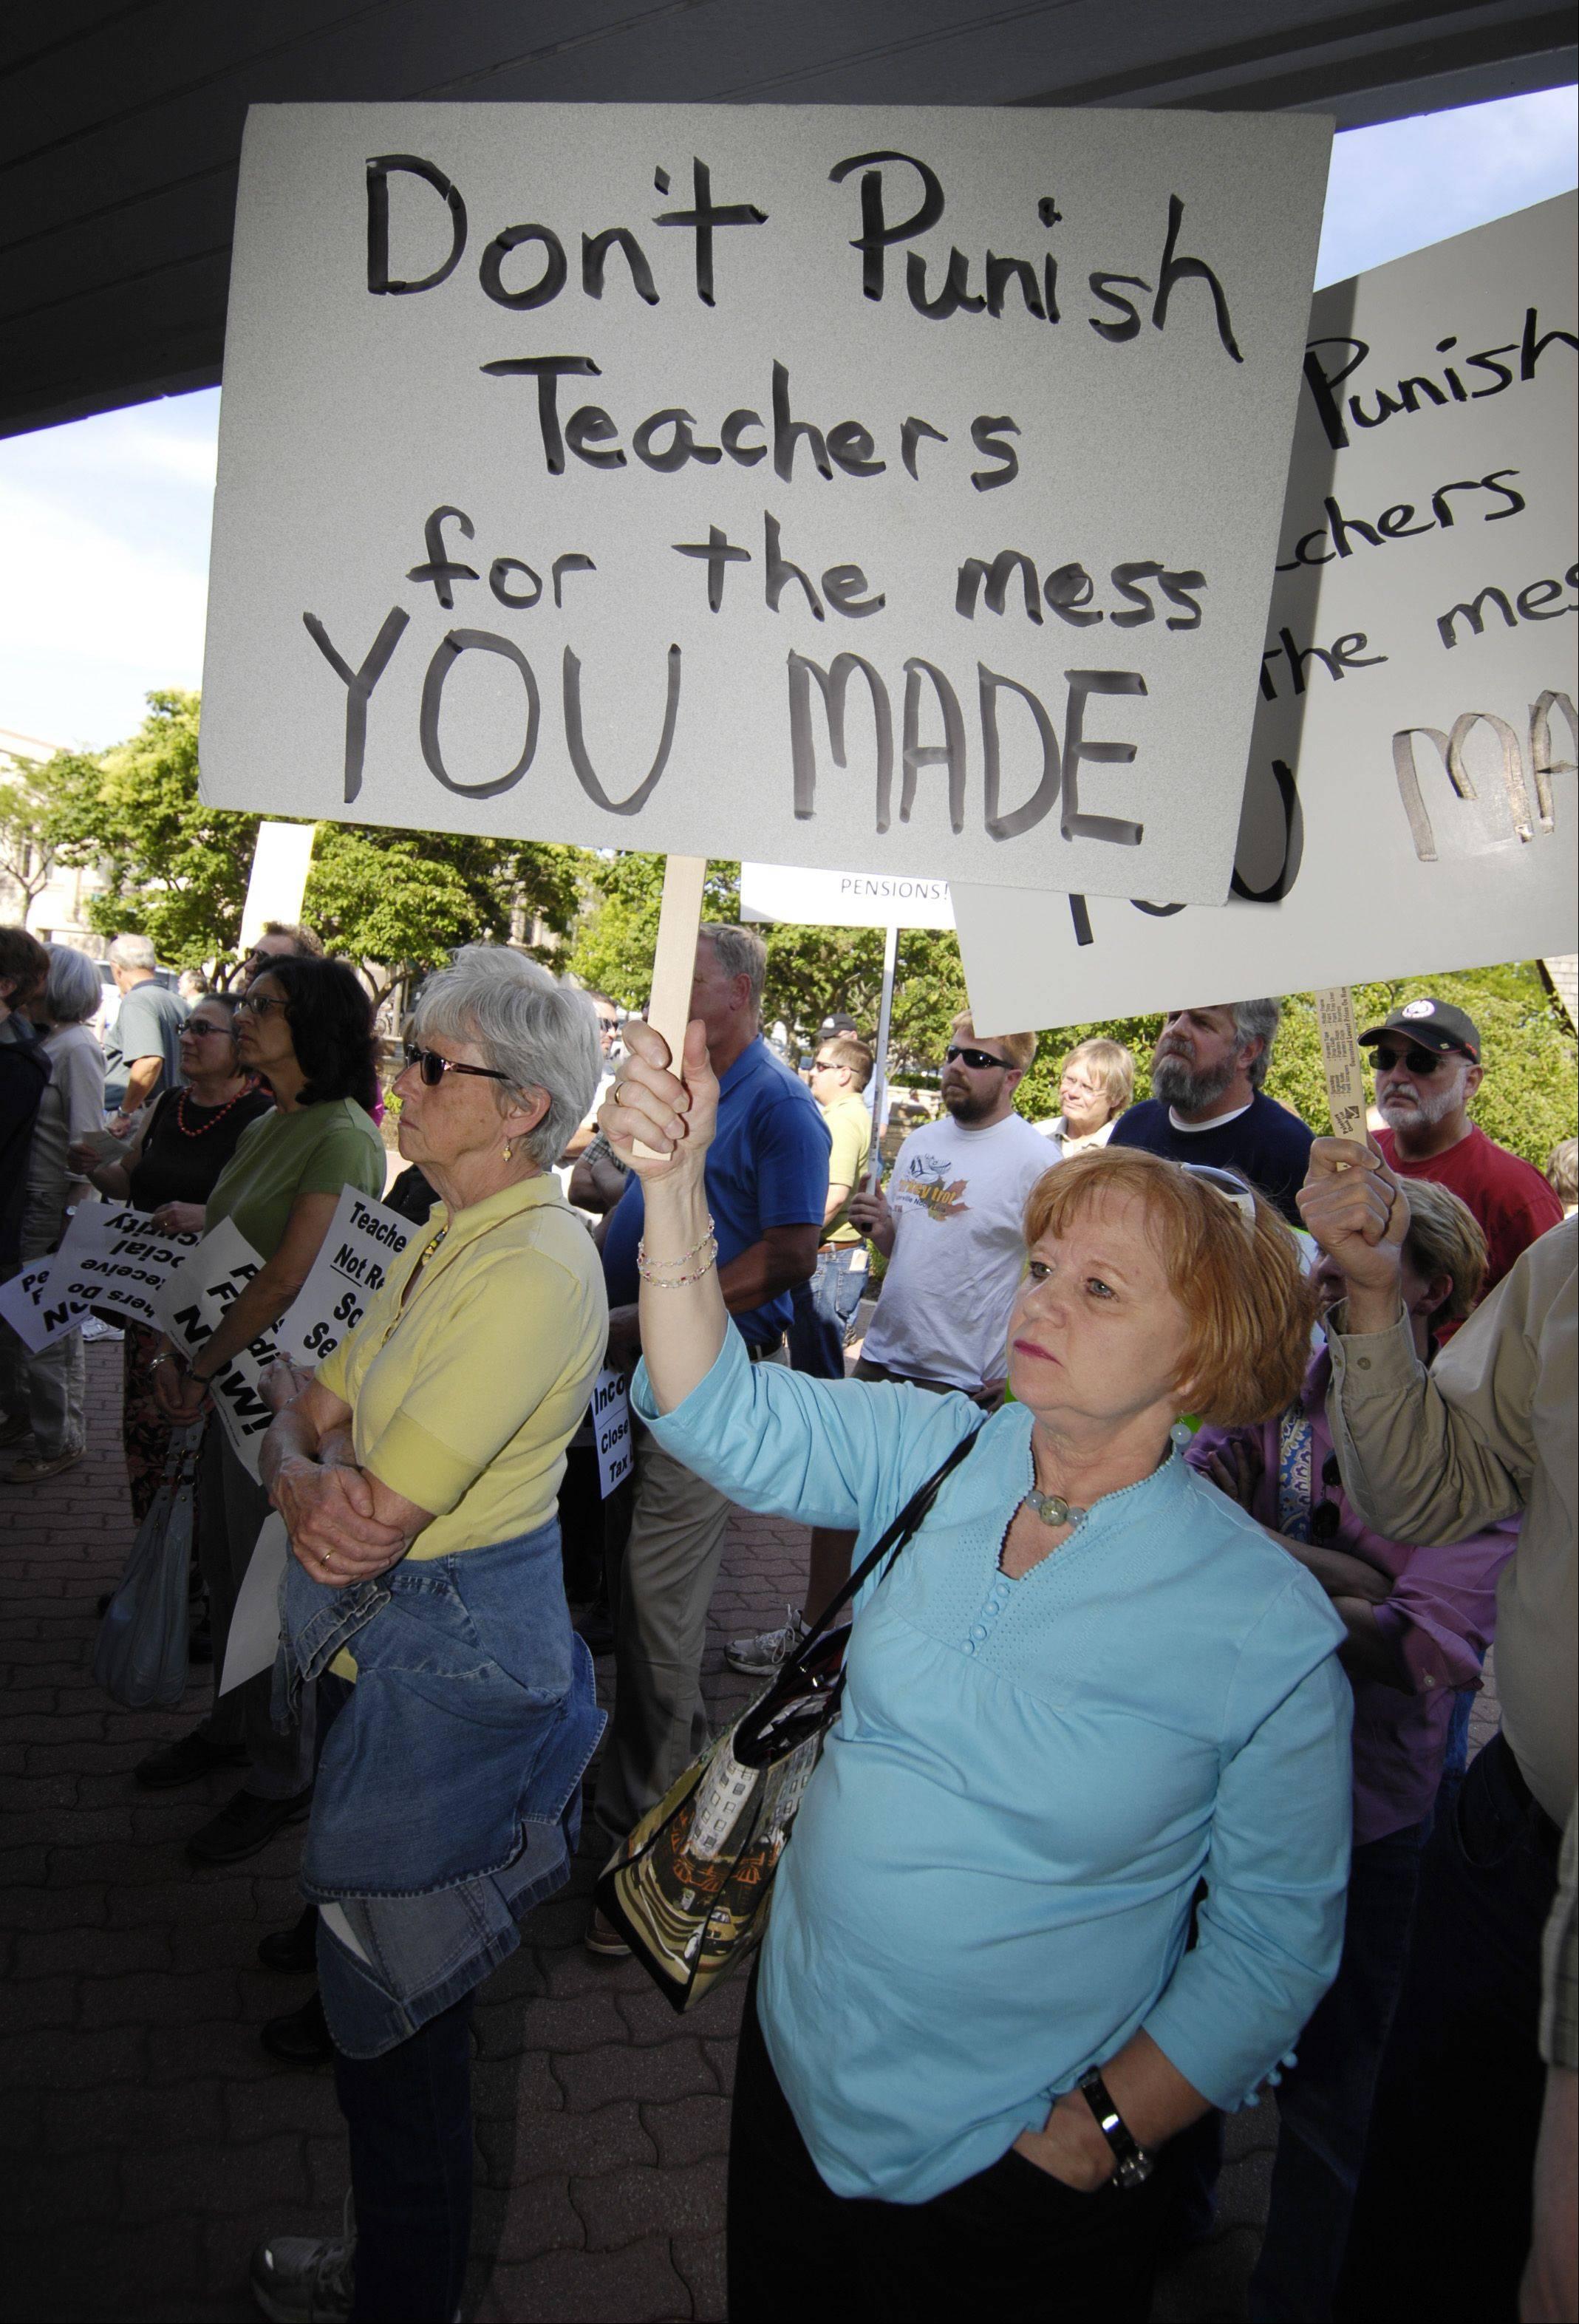 Educators across the state gathered in April to protest pension reform proposals, including changing cost-of-living increases that amounted to $900 million of the $4.2 billion paid in teacher retirement benefits last year.